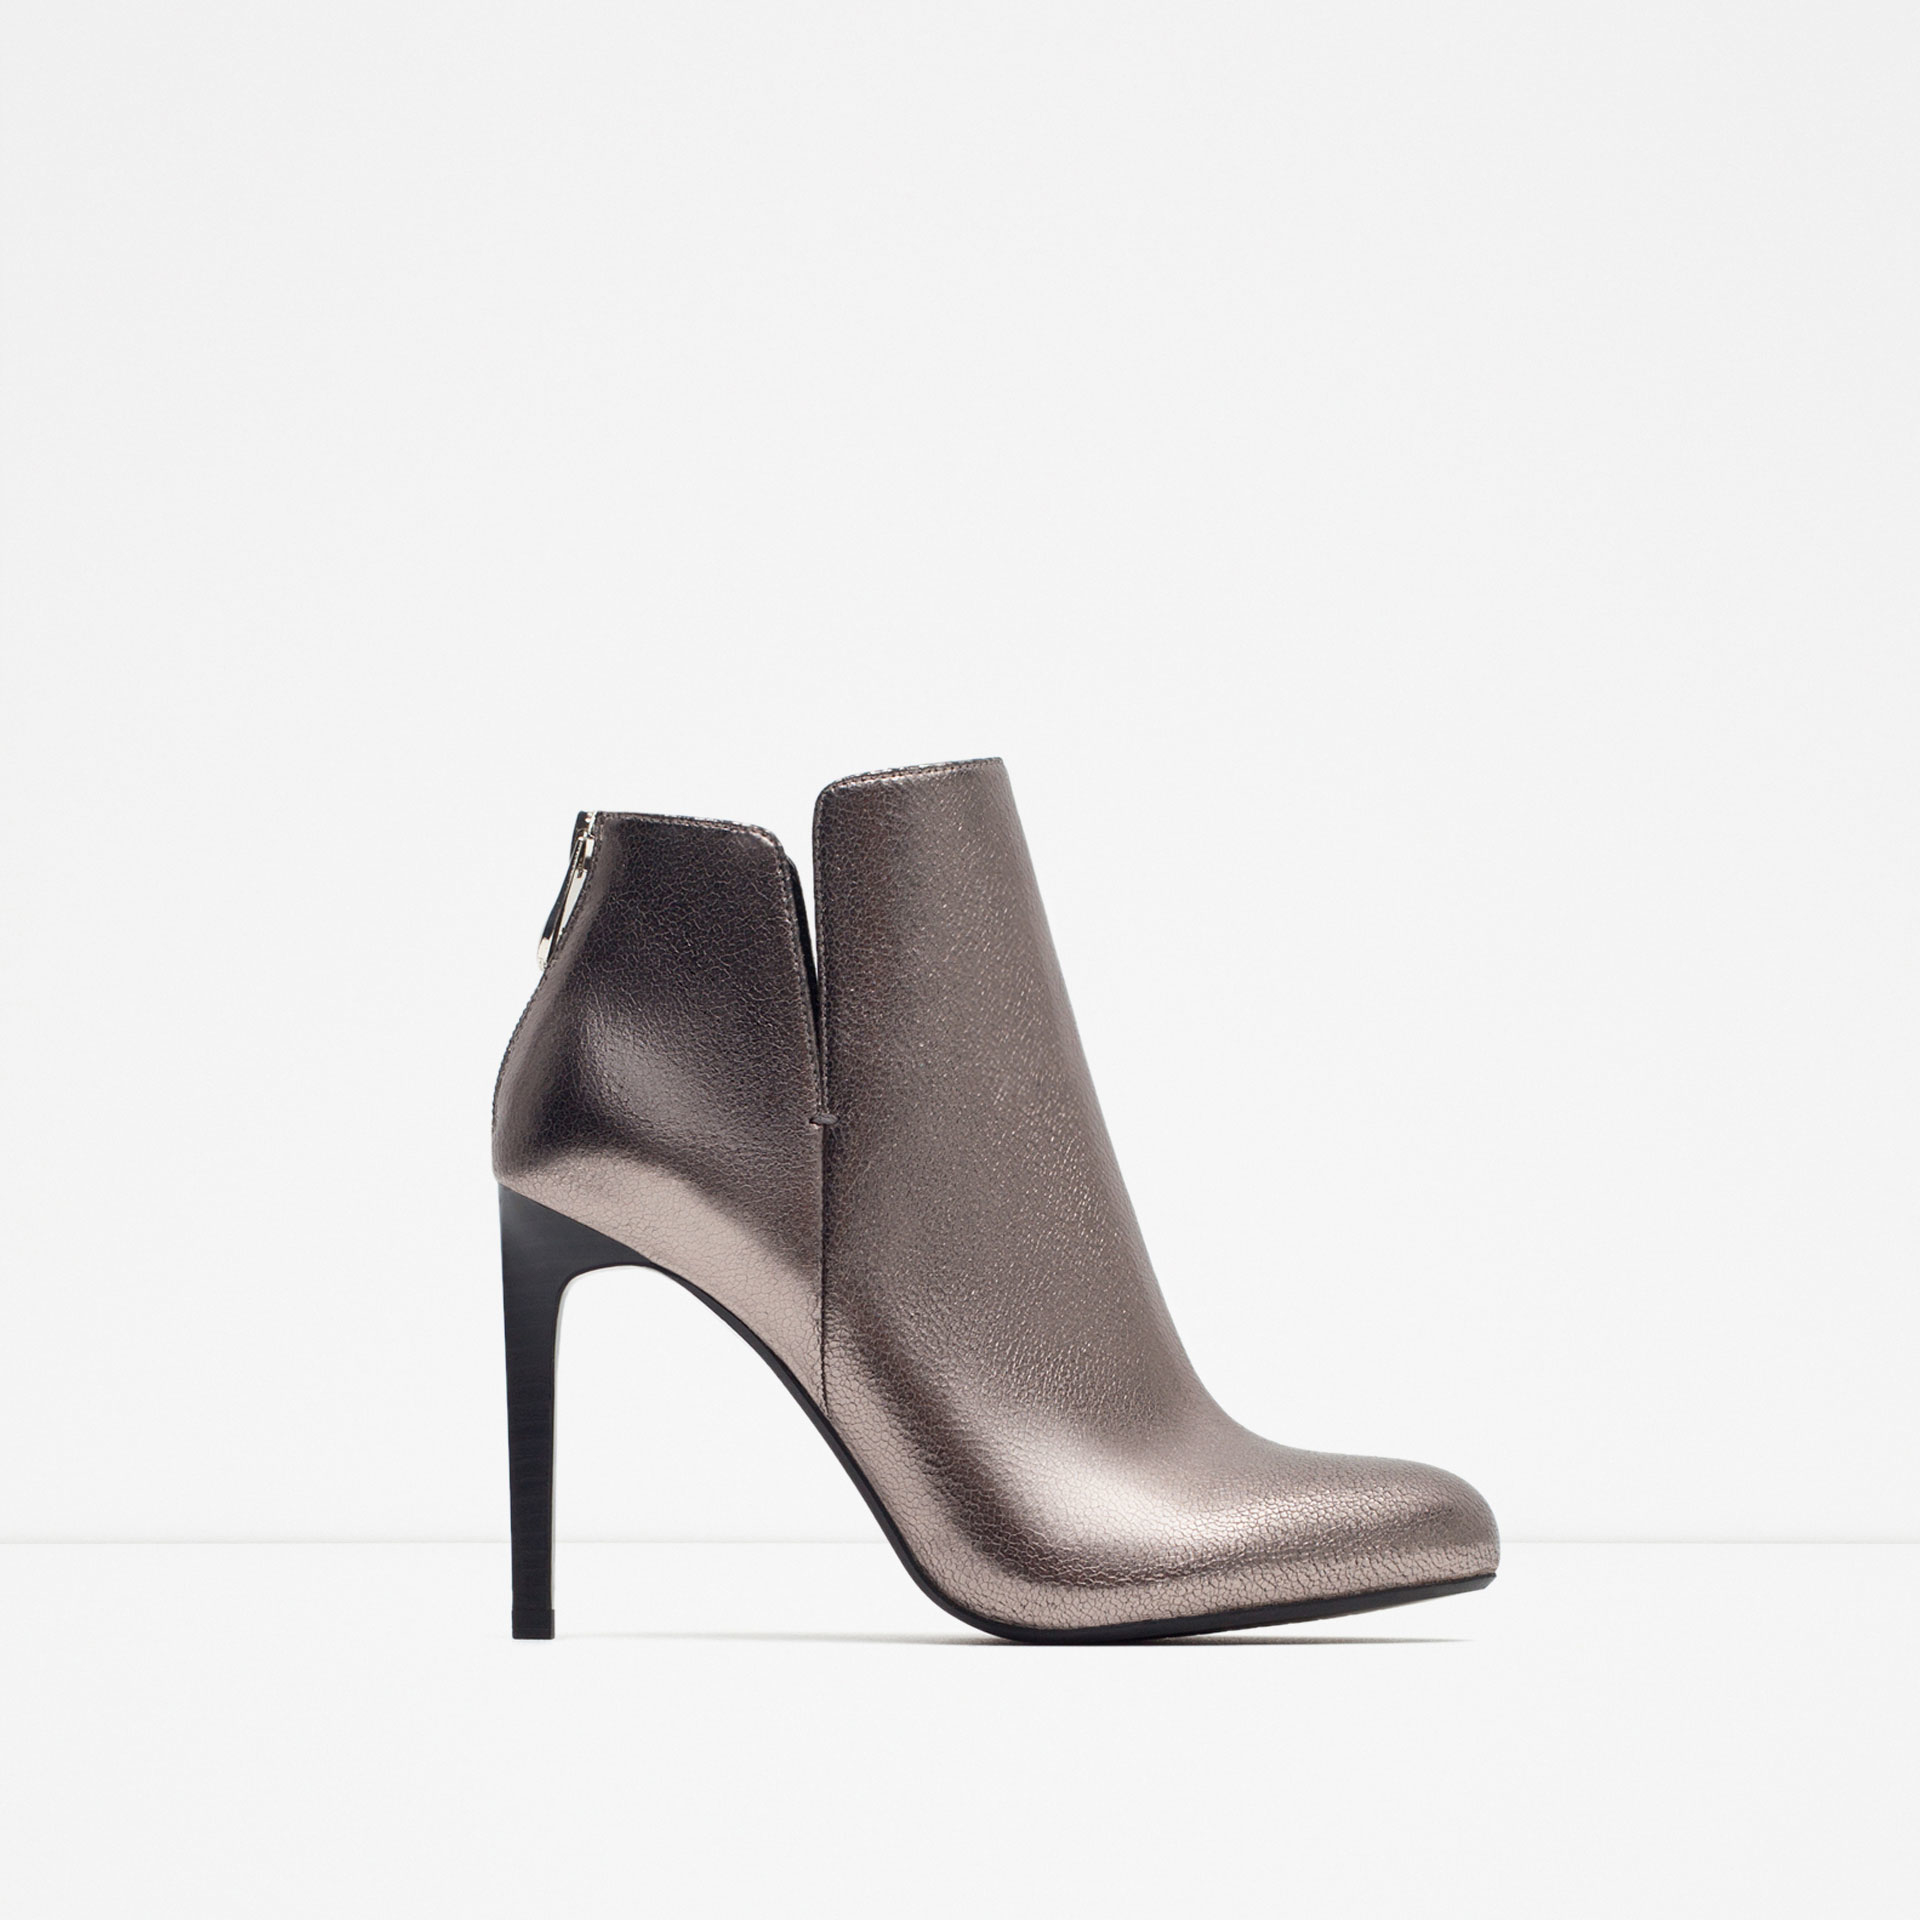 Silver Ankle Boots Heels